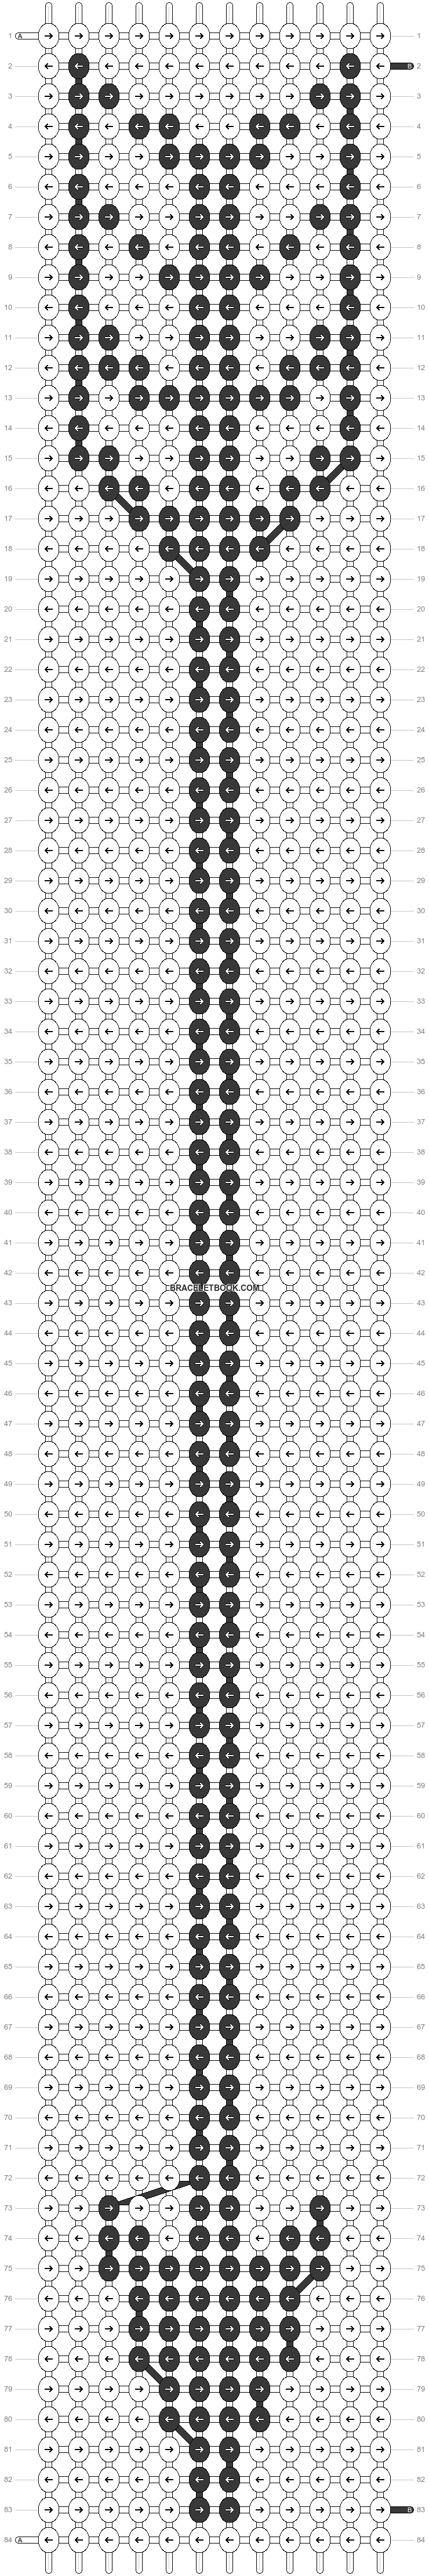 Alpha Pattern #15857 added by awilson16